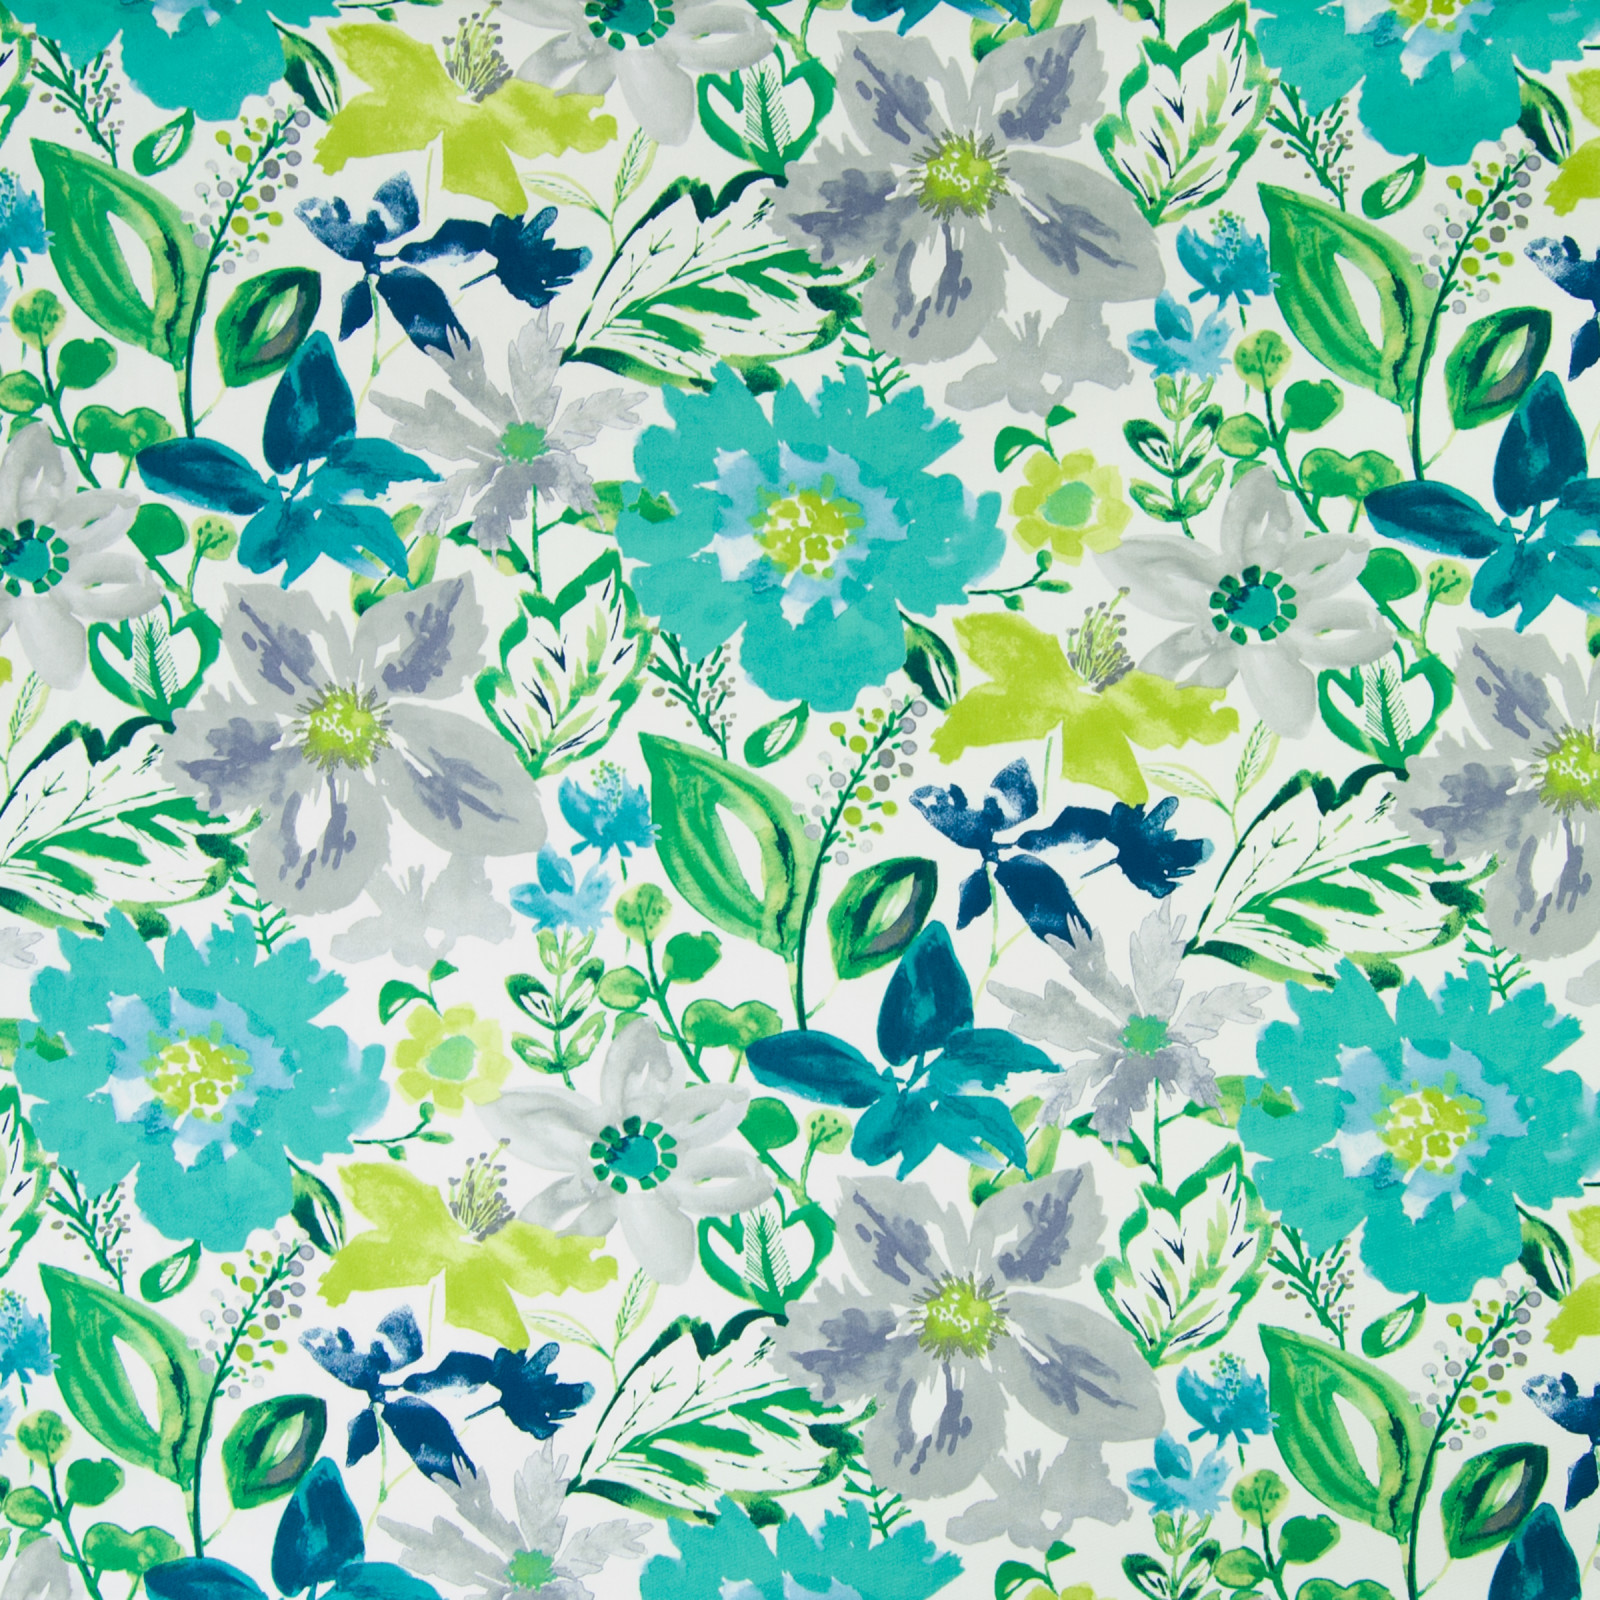 Turquoise Teal Floral Print Upholstery Fabric